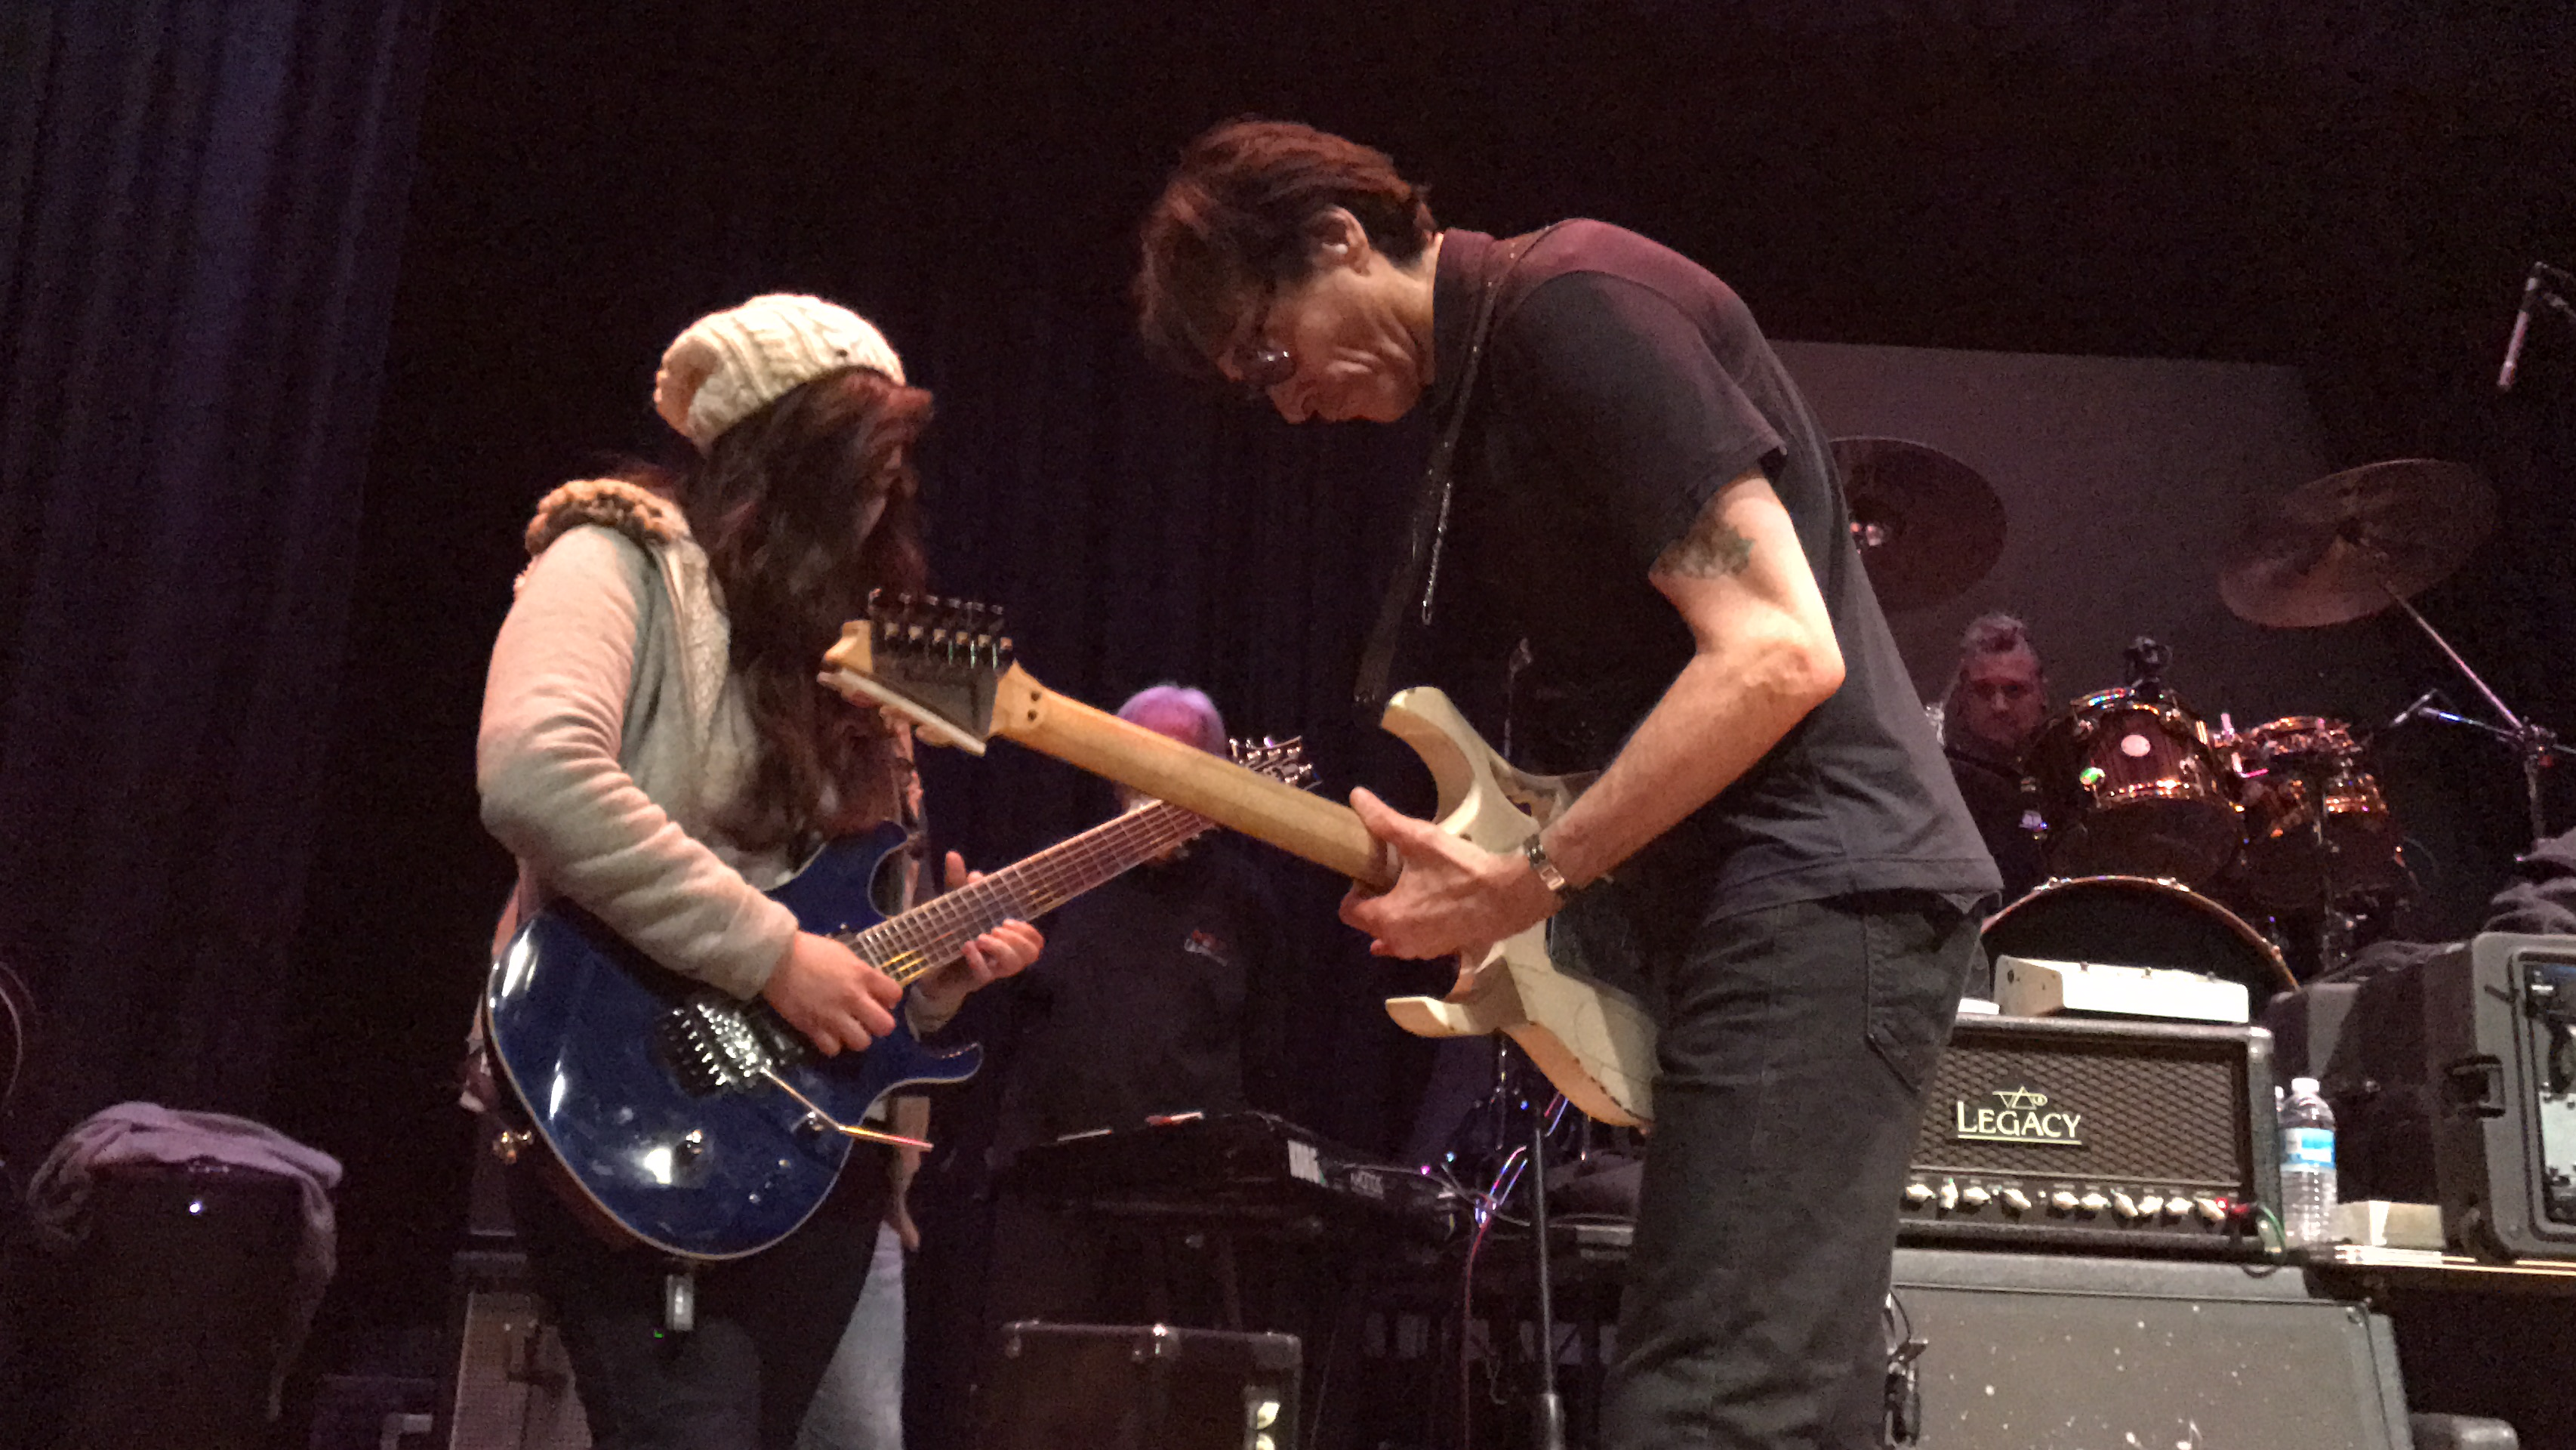 Playing wit Steve Vai